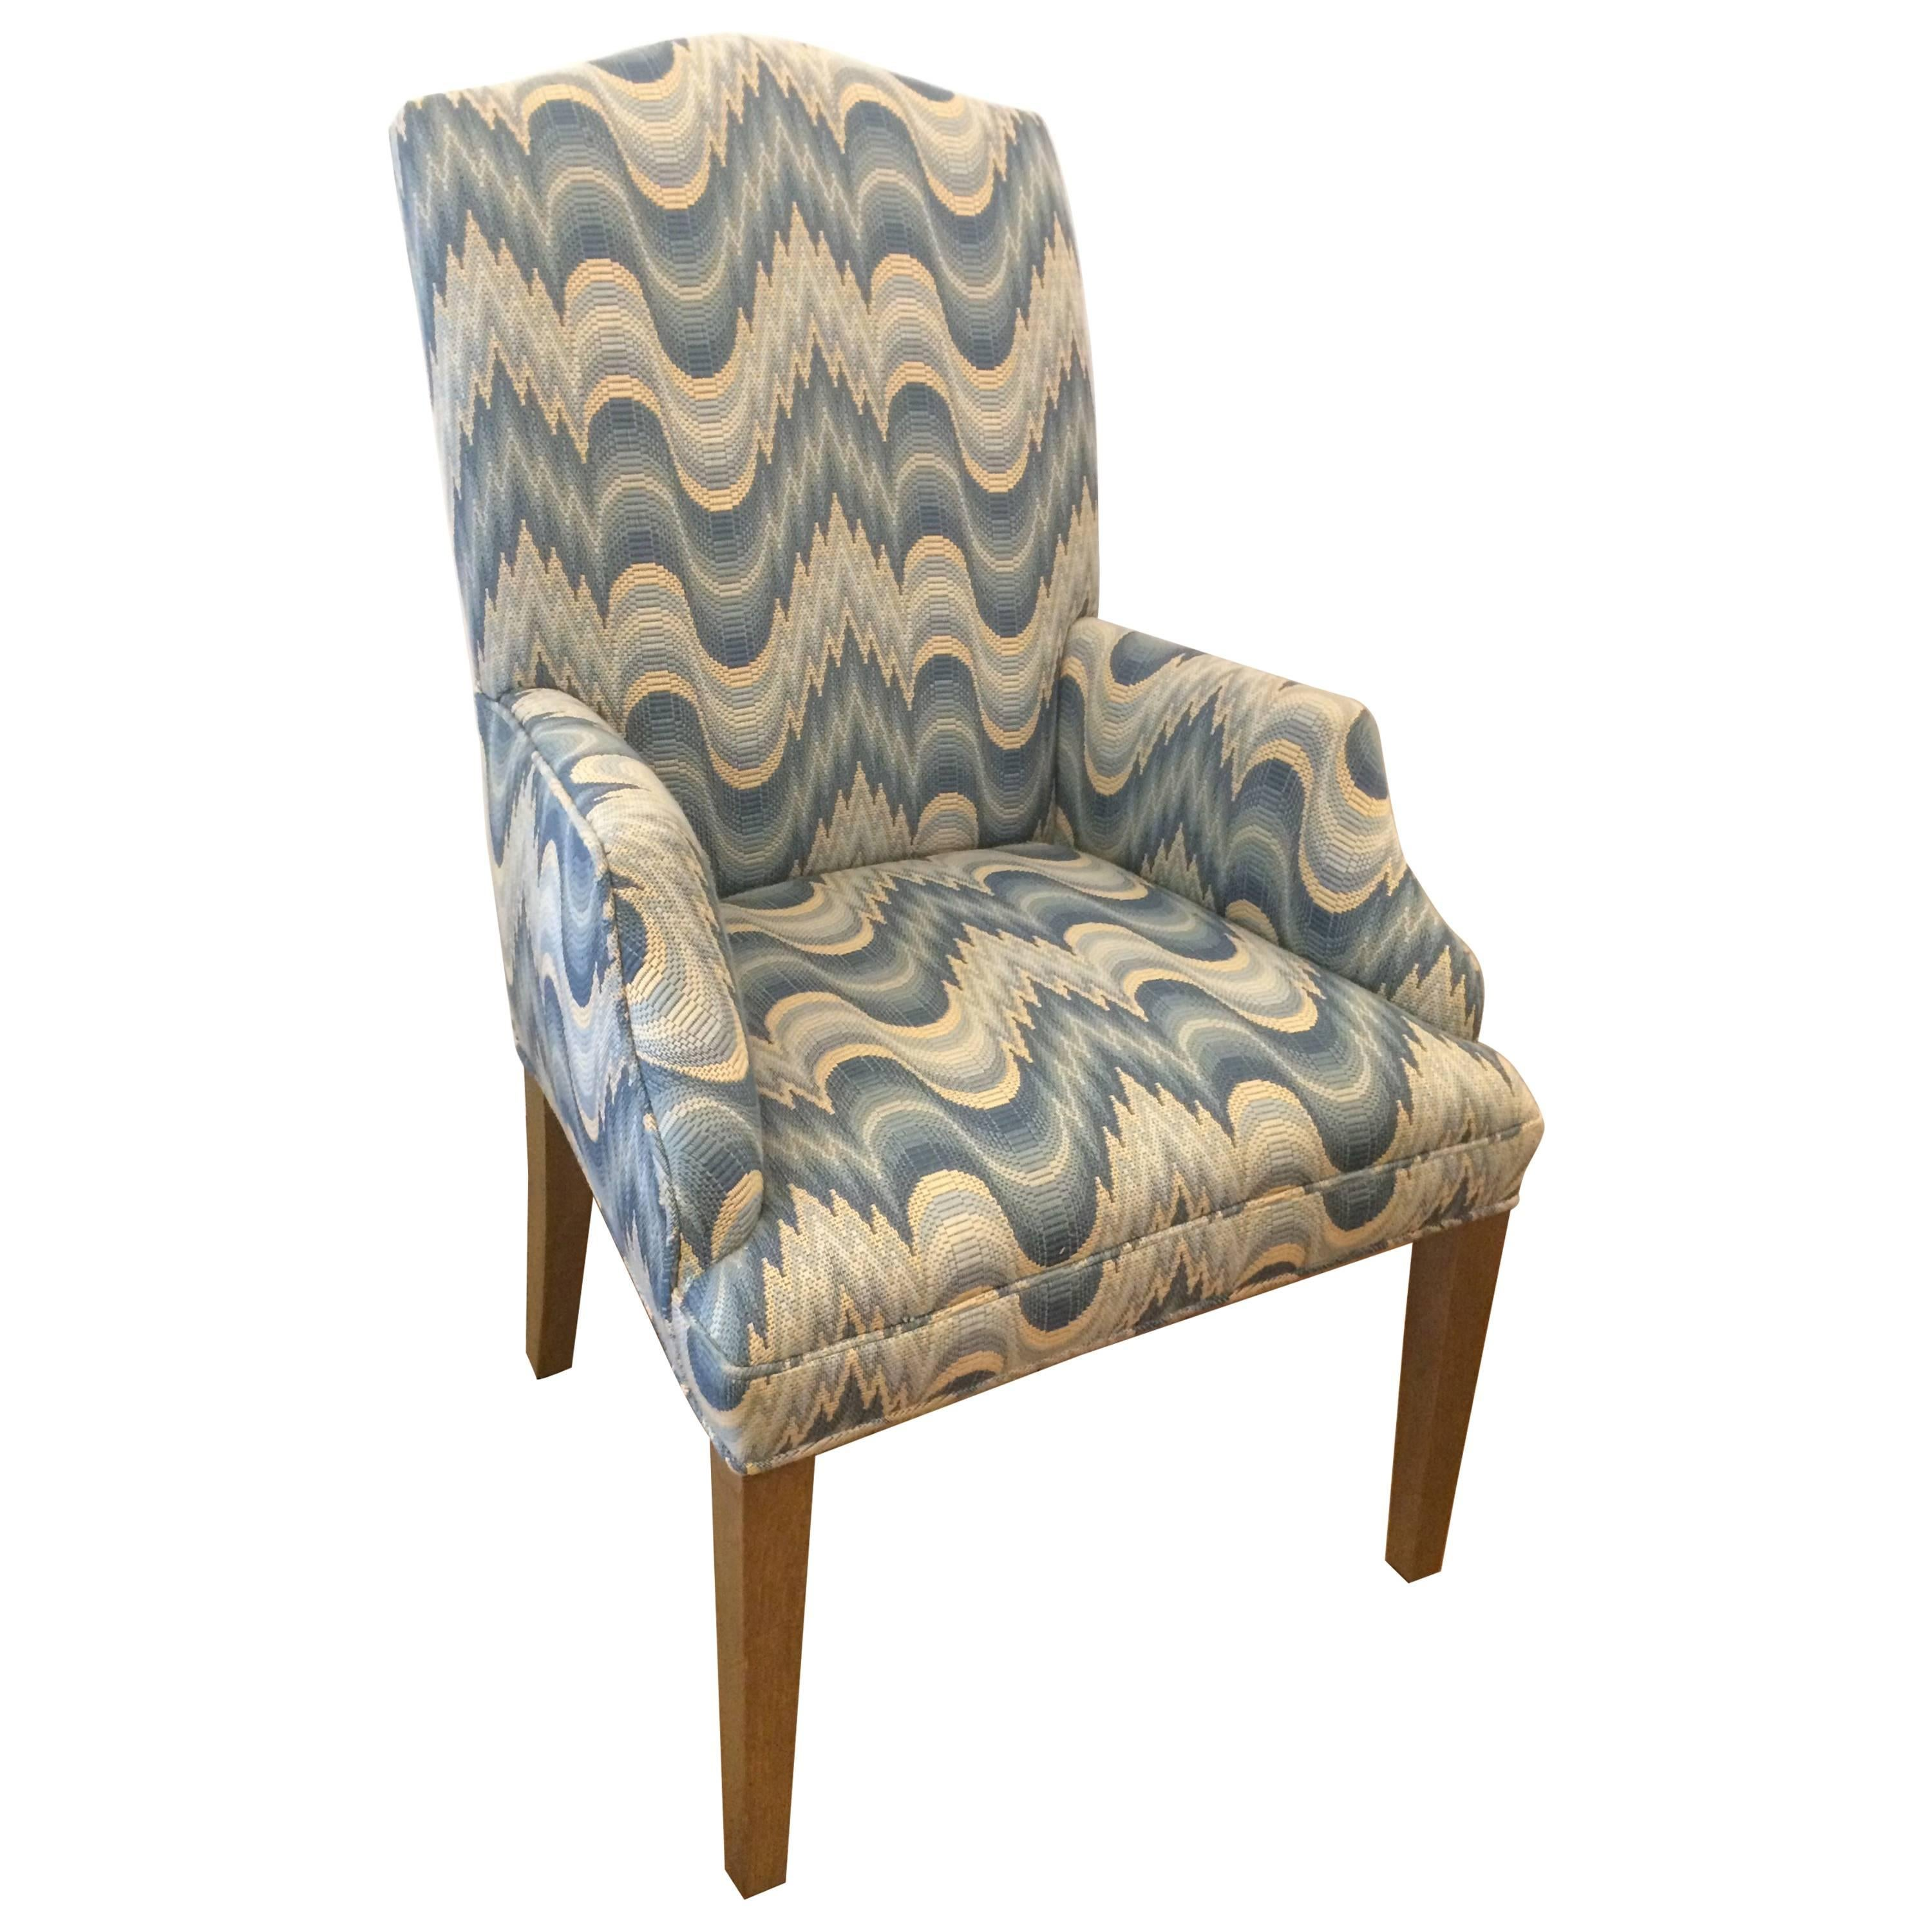 By Clarence House. Negotiable · Stunning High Back Wing Chair Upholstered  In Bargello Weave